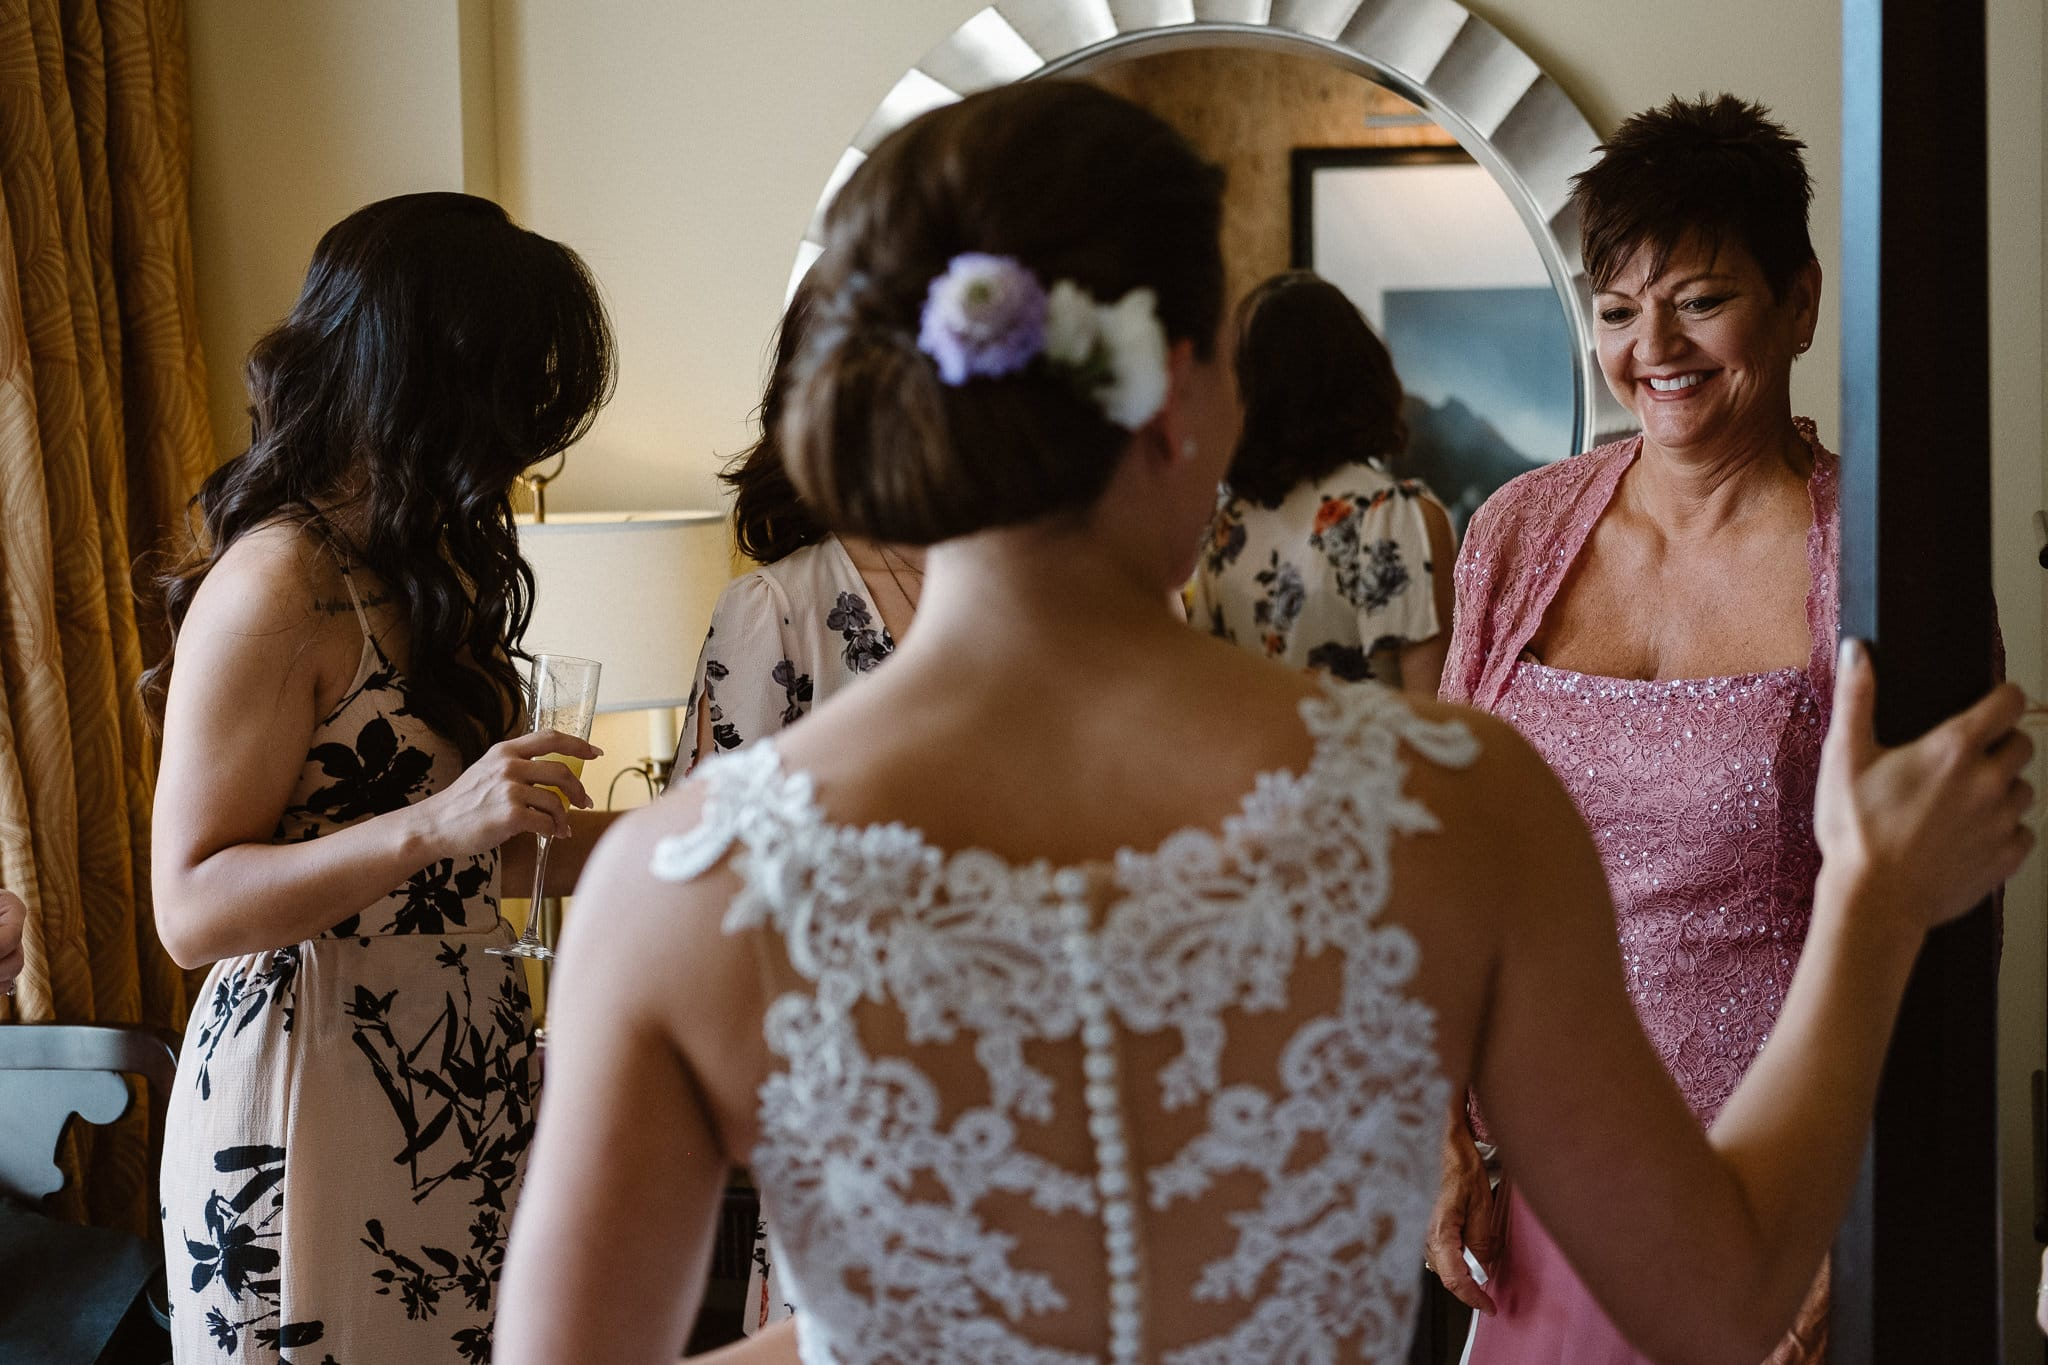 Bride getting ready for Colorado mountain elopement at St. Julien Hotel, Boulder wedding photographer, bride putting on dress, bride's mom looking on